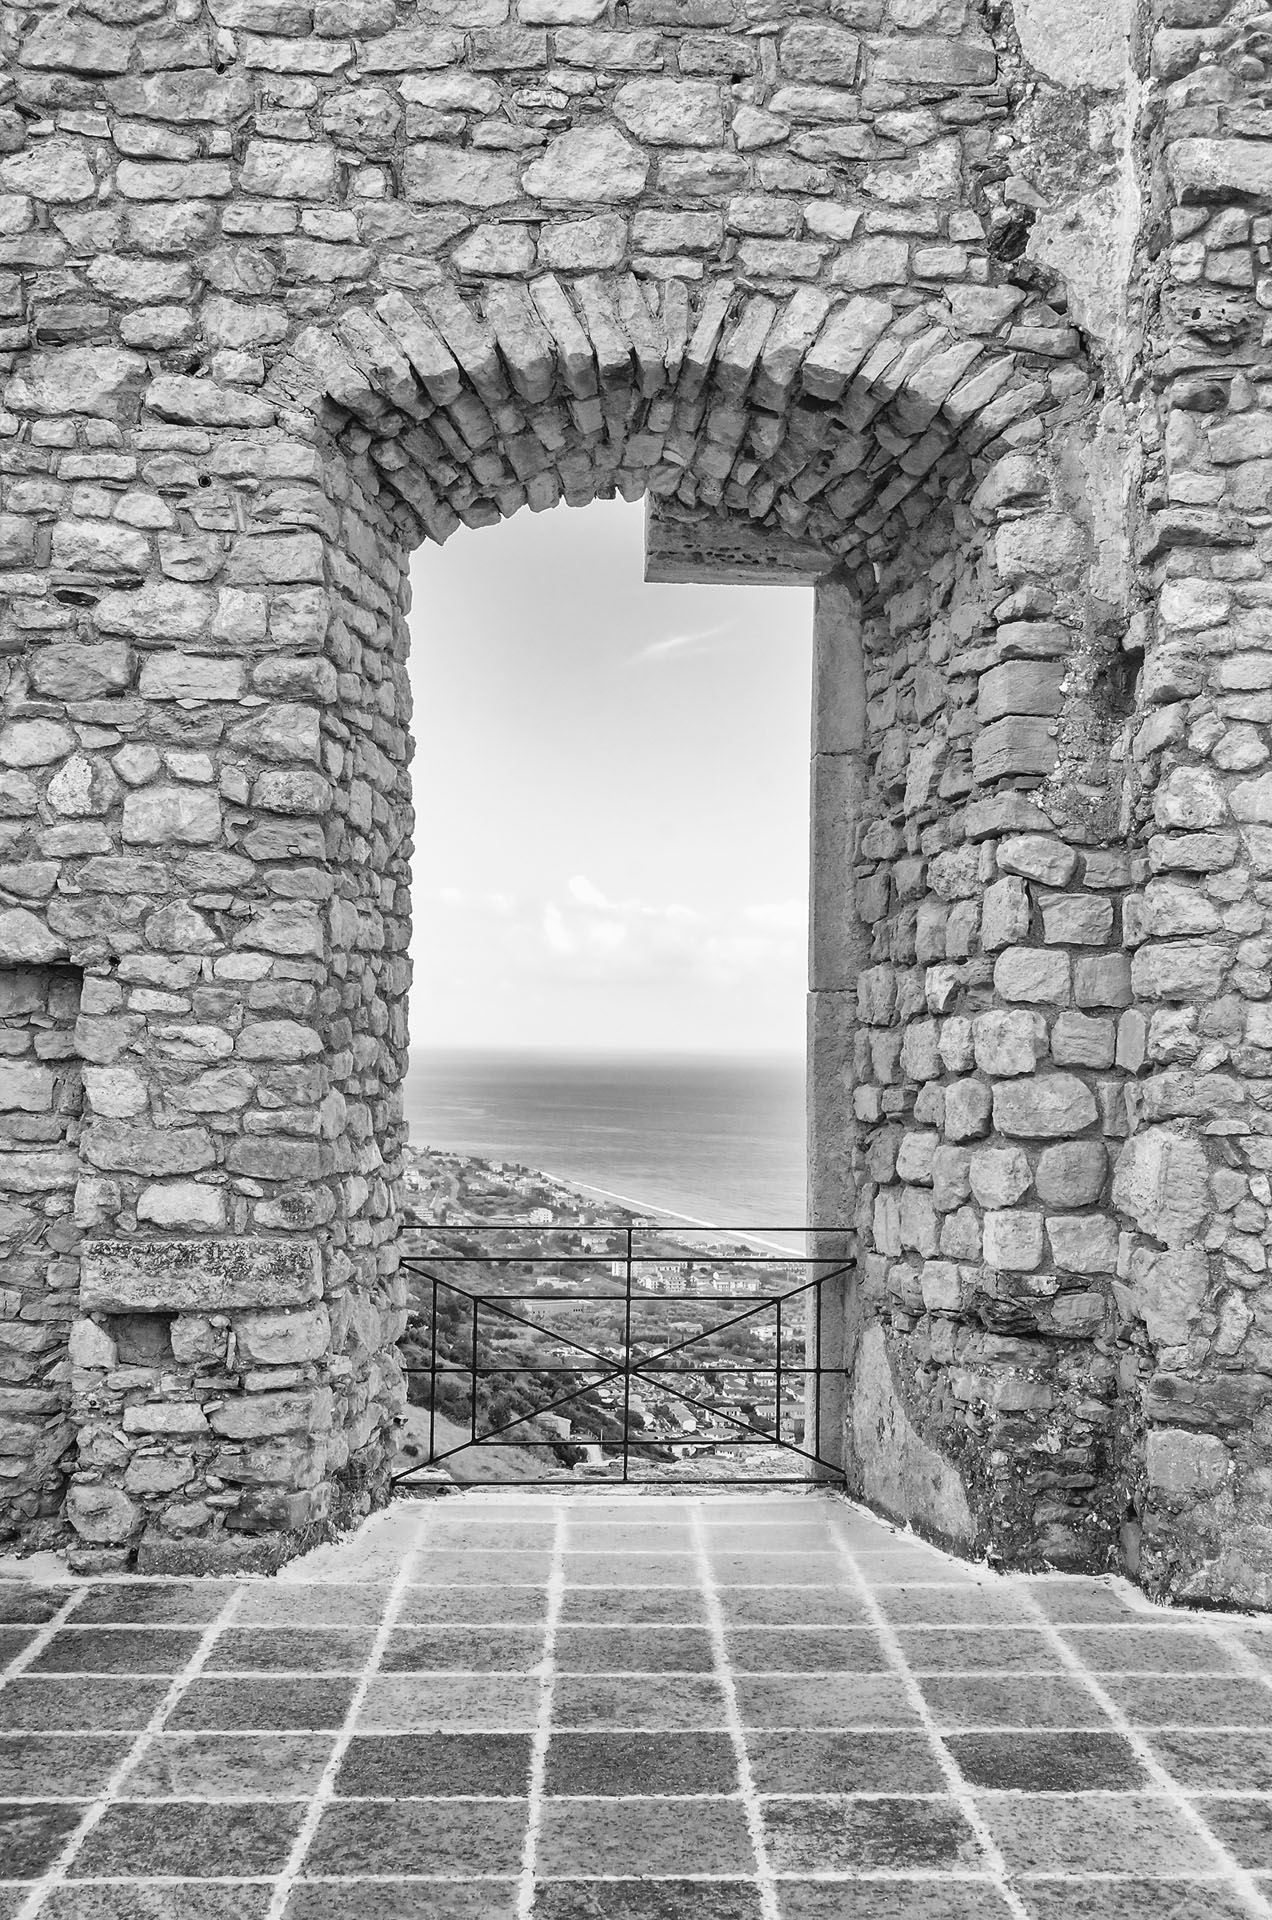 Ancient window among ruins of an old castle with seascape